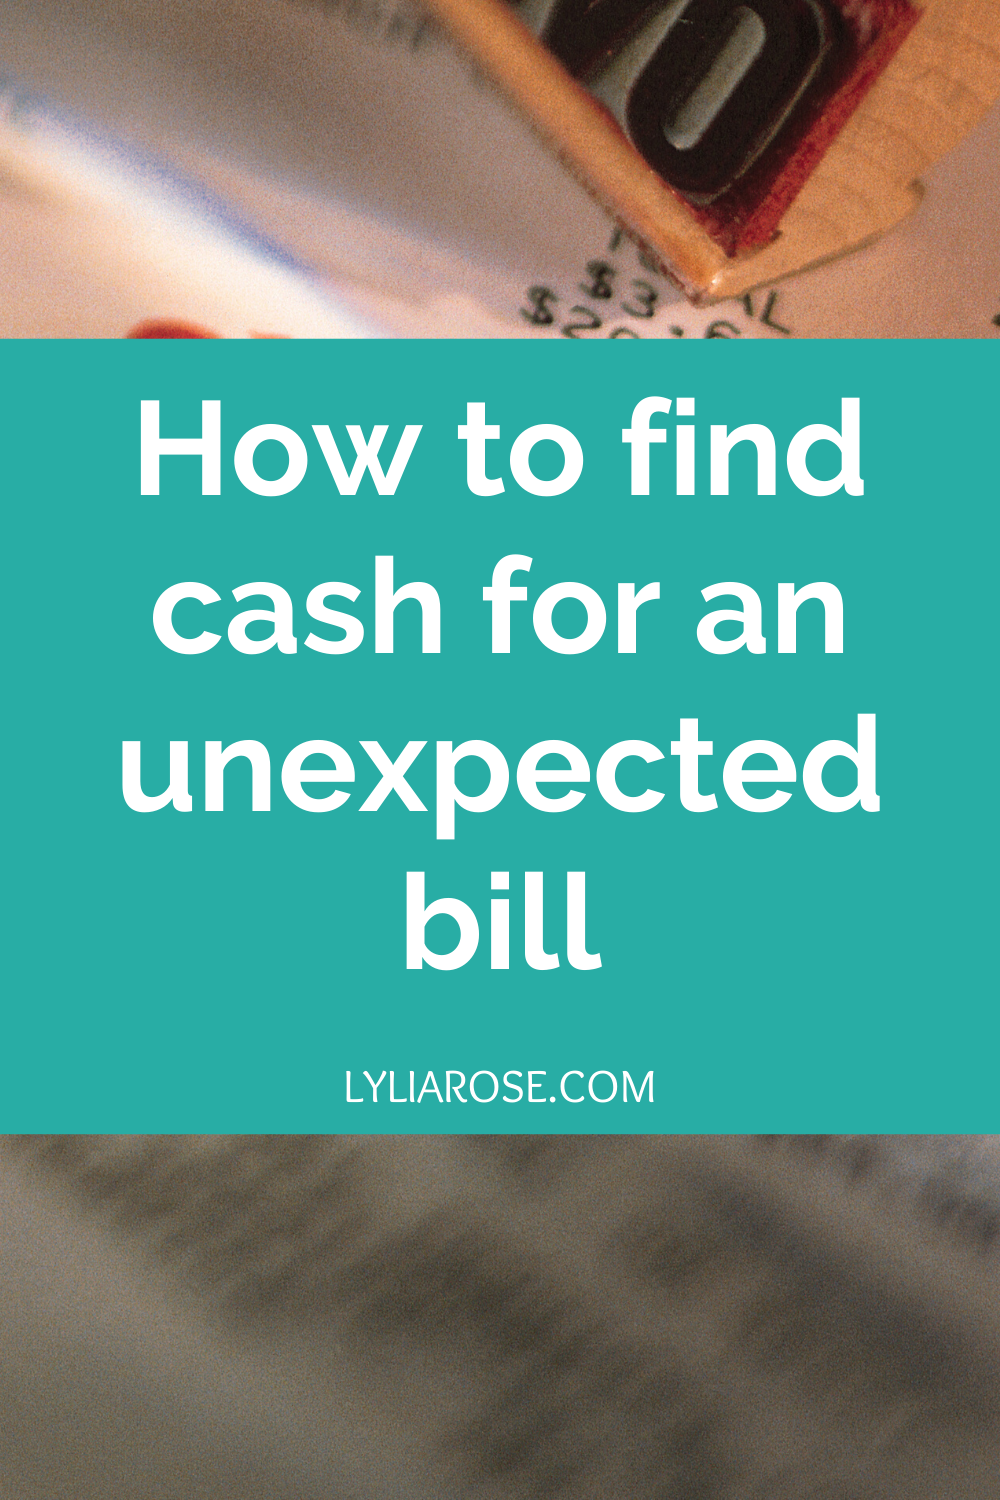 How to find cash for an unexpected bill